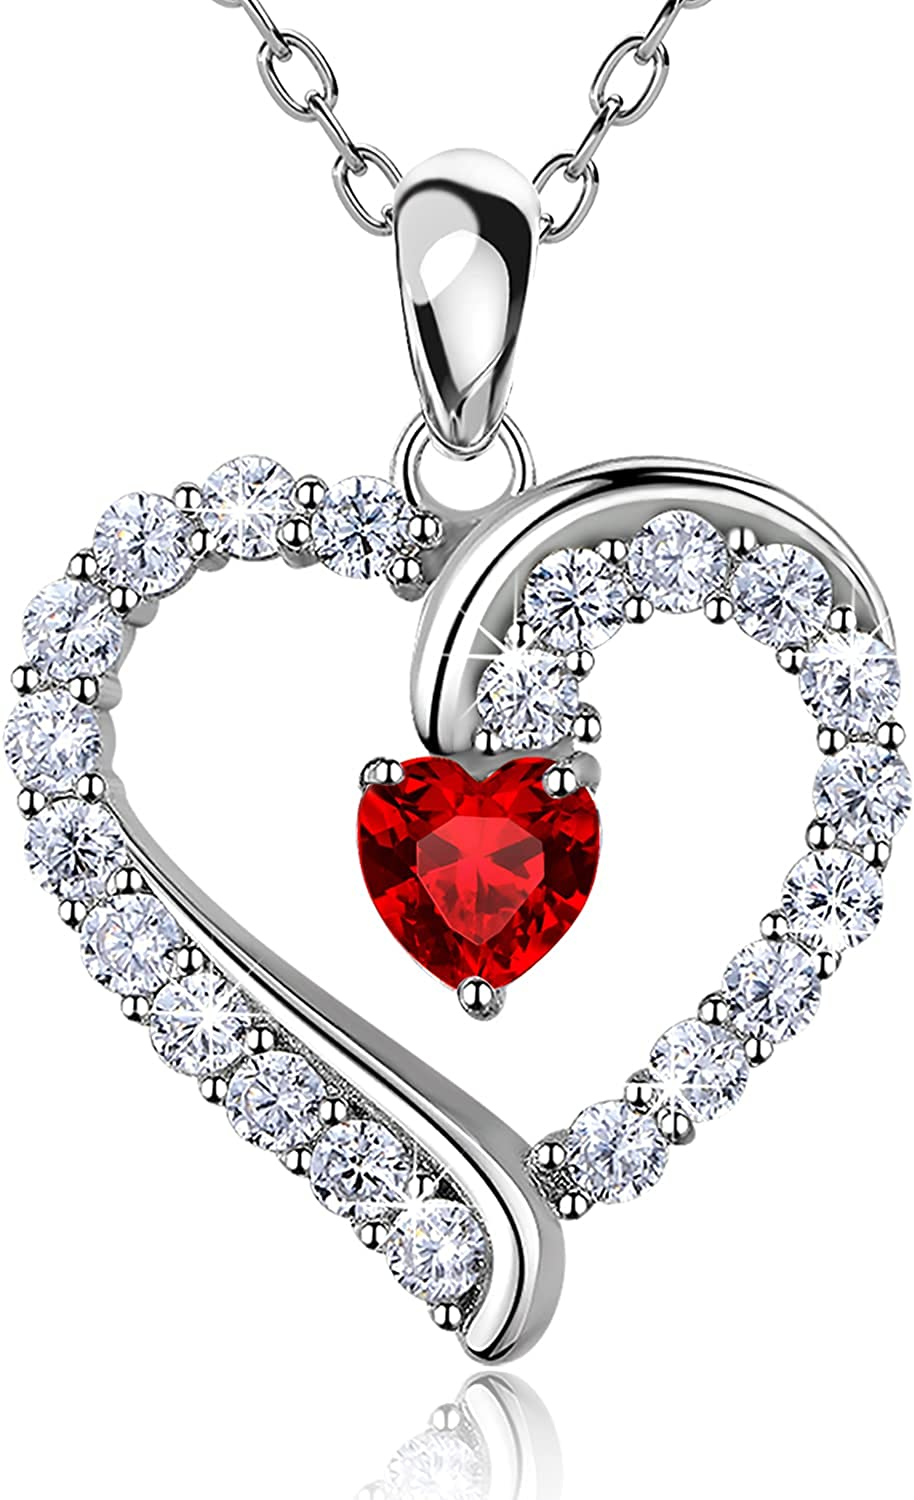 Romantic Love Heart Necklace Chain Solid 925 Sterling Silver Jewelry for Women